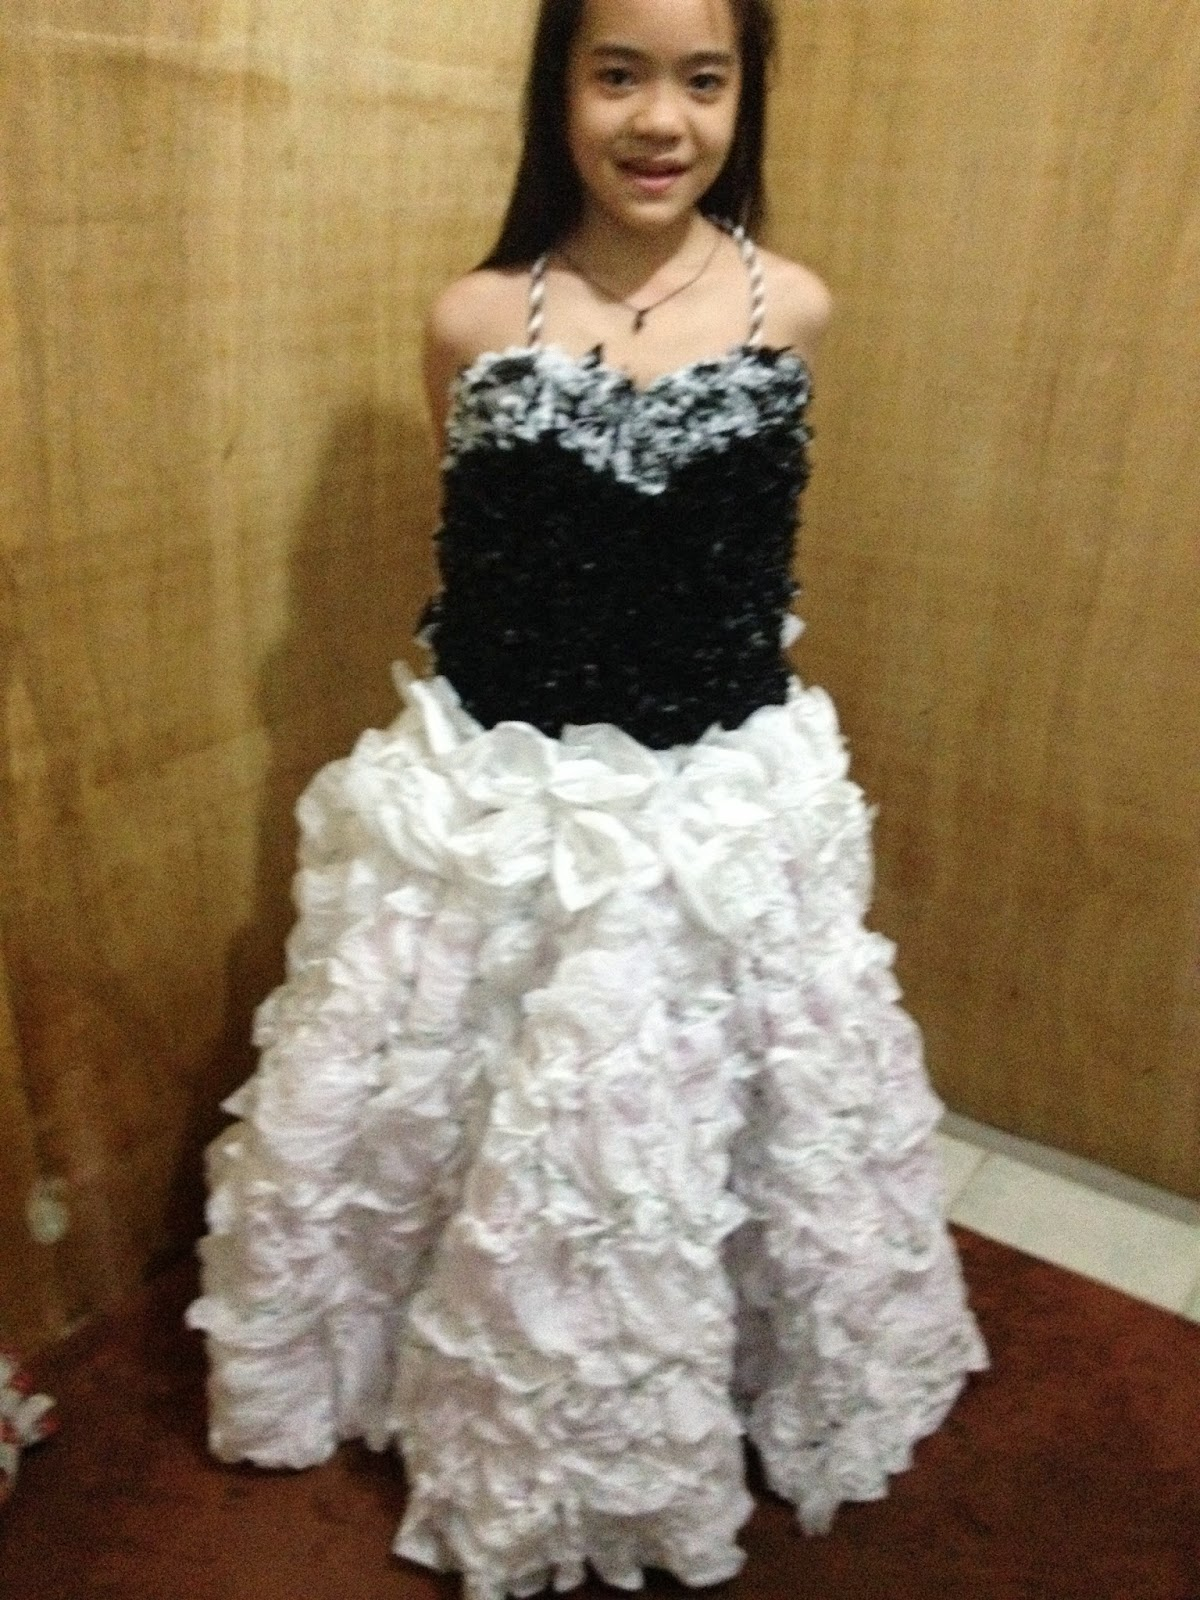 Recycled Gowns and Dress: September 2014